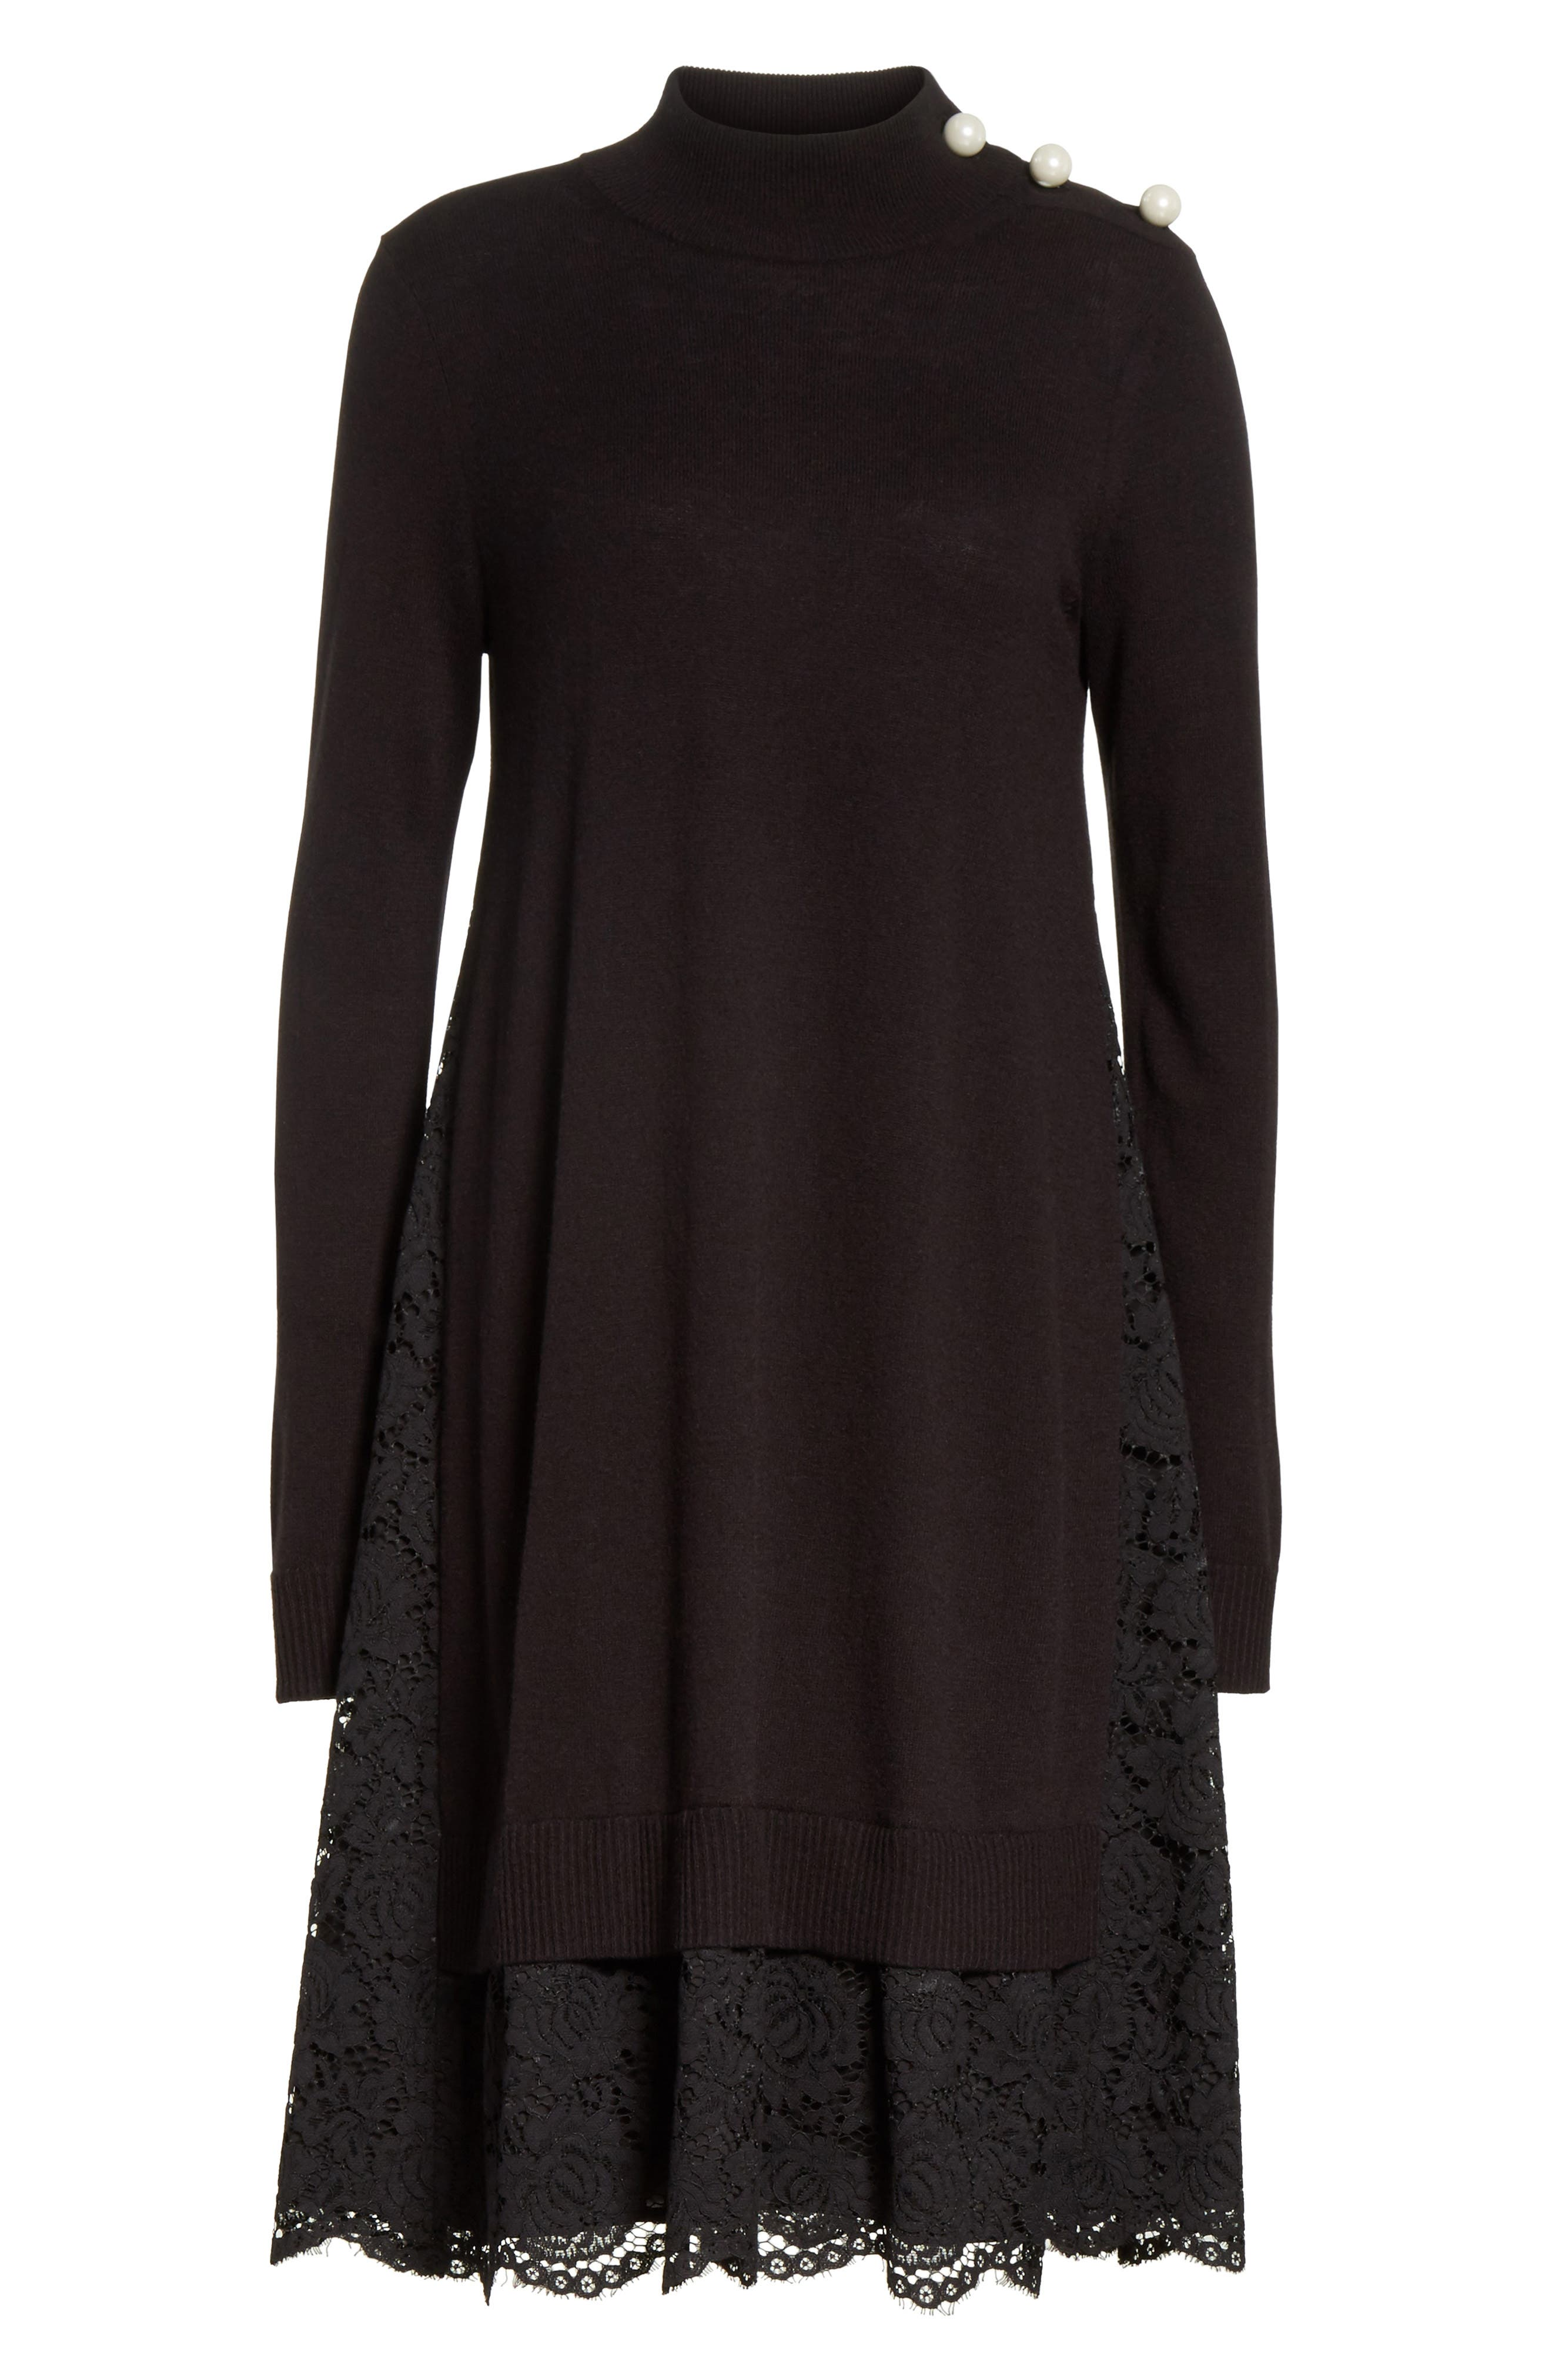 lace inset sweater dress,                             Alternate thumbnail 6, color,                             Black